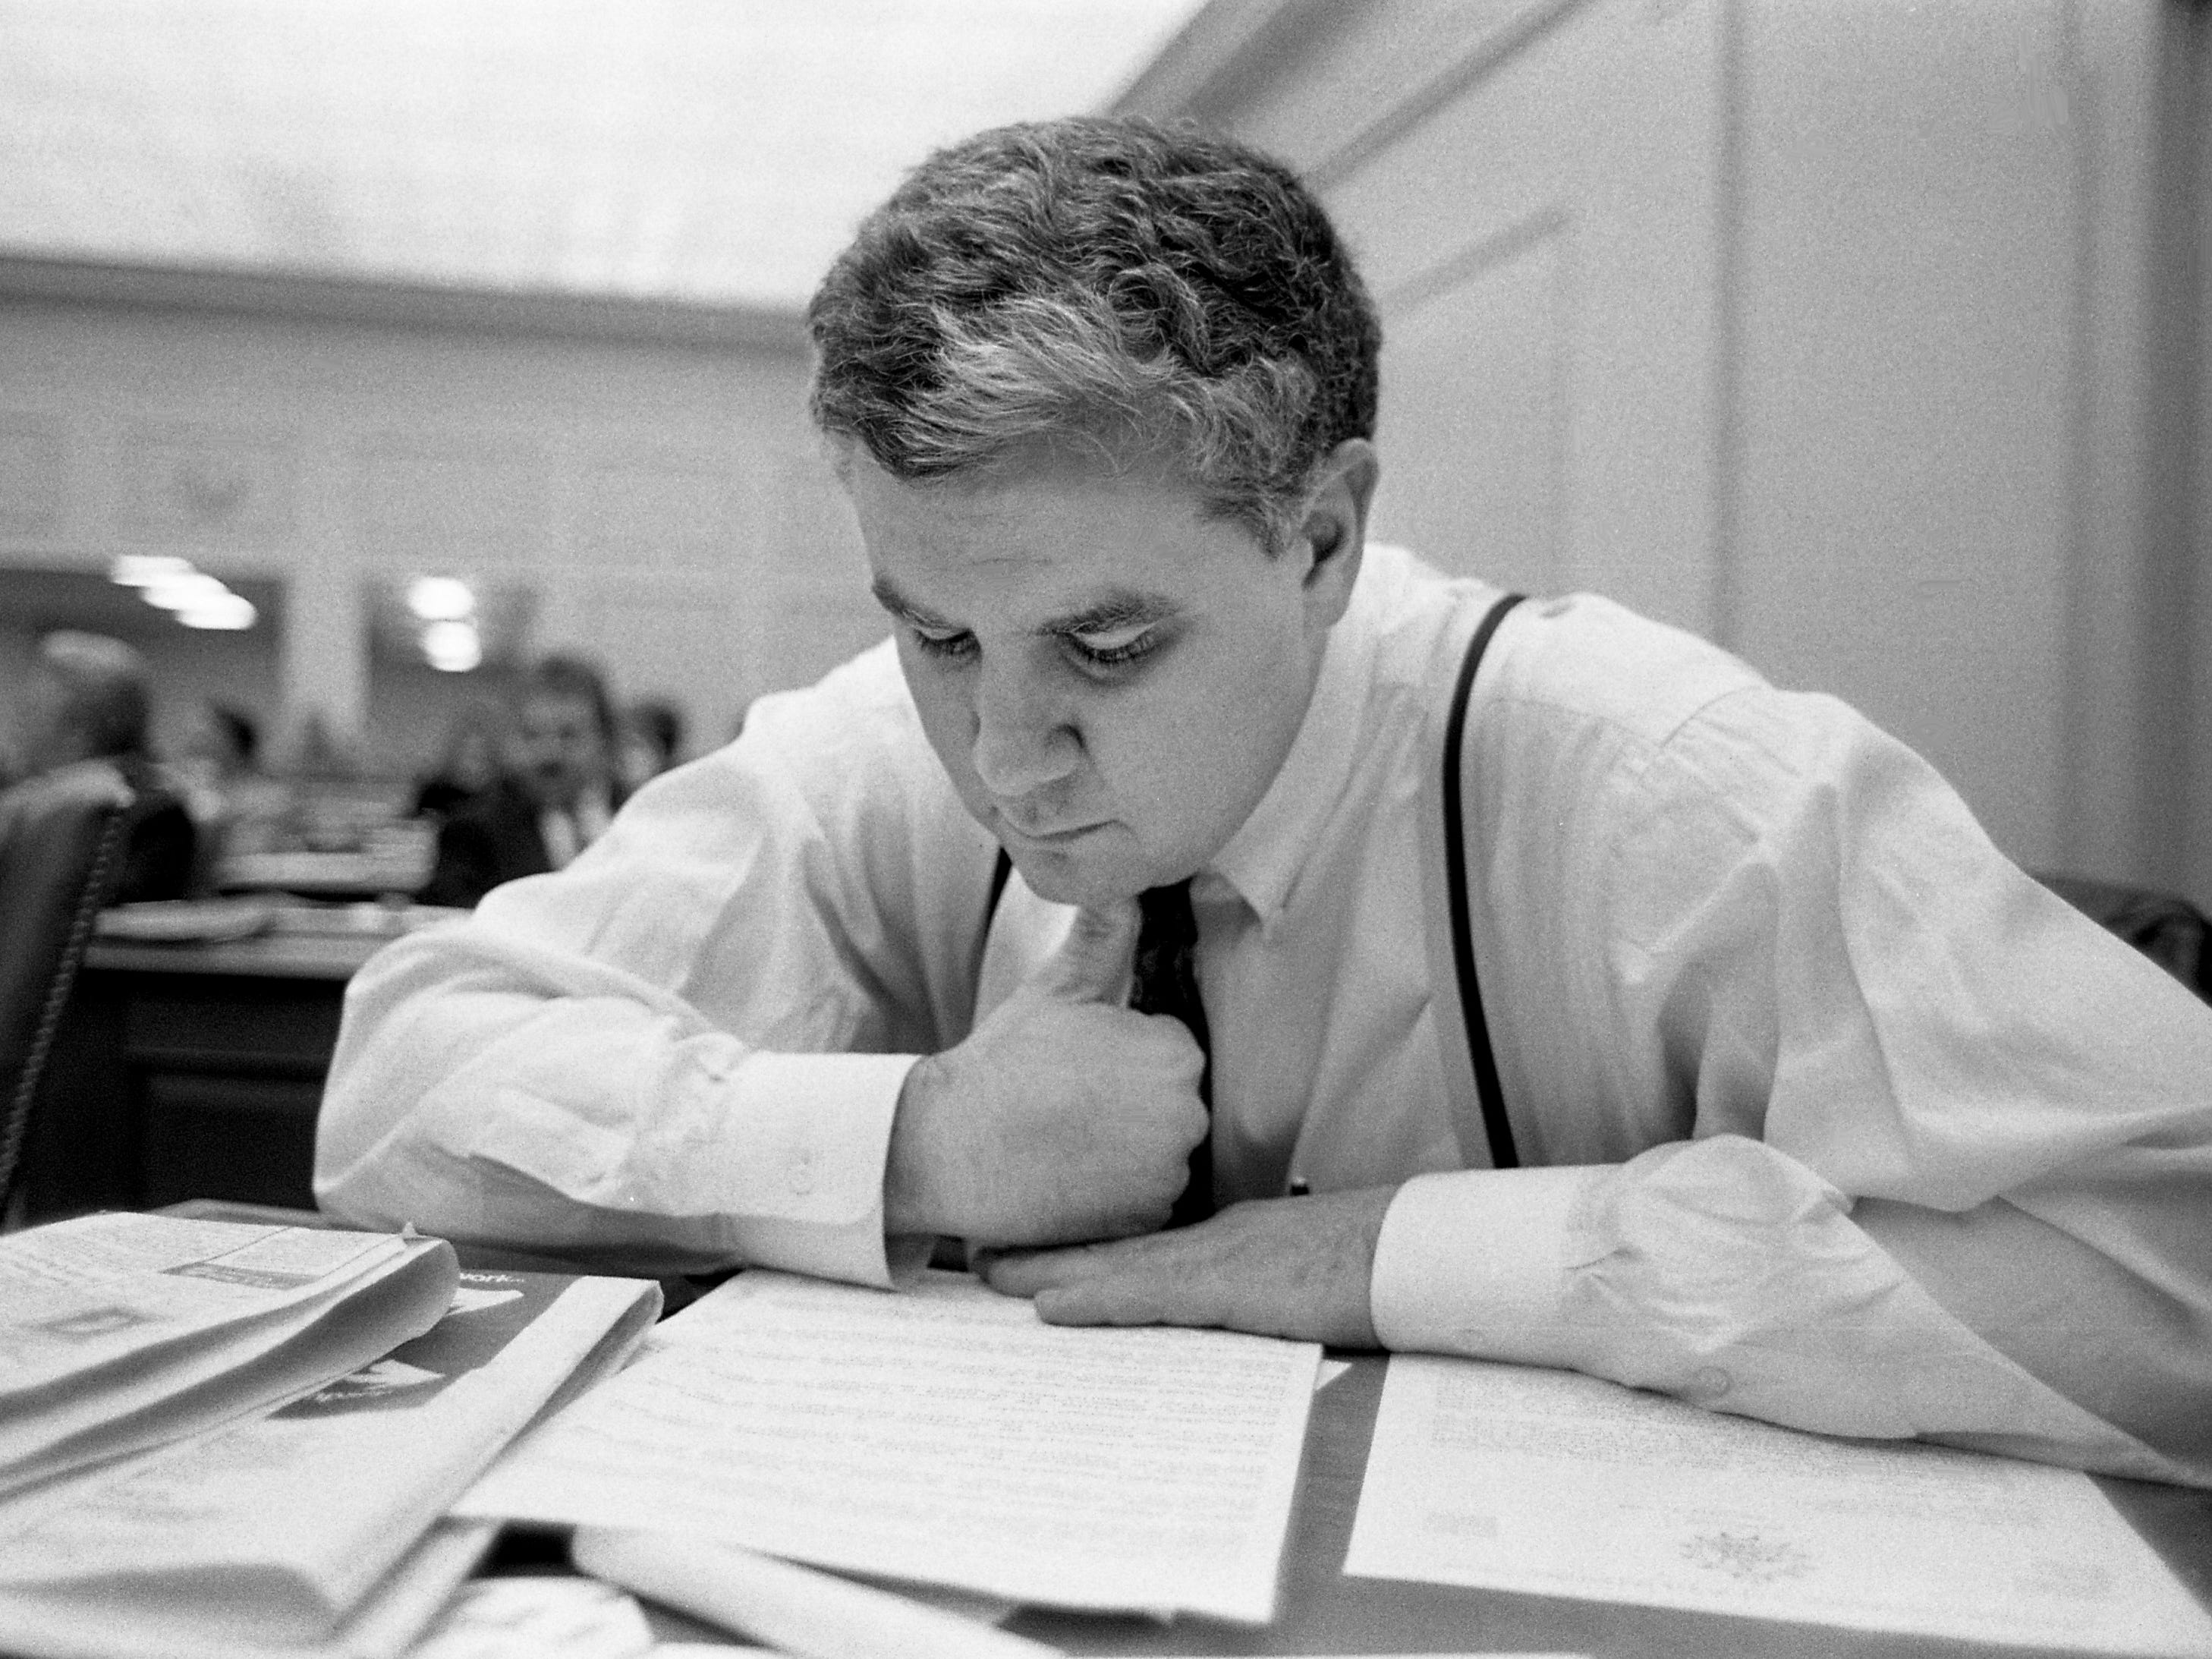 Metro Councilman George Armistead checks his council agenda for upcoming landfill legislation after the council voted 22-15 to test four proposed landfill sites during its meeting at the Metro Courthouse on Feb. 7, 1989.